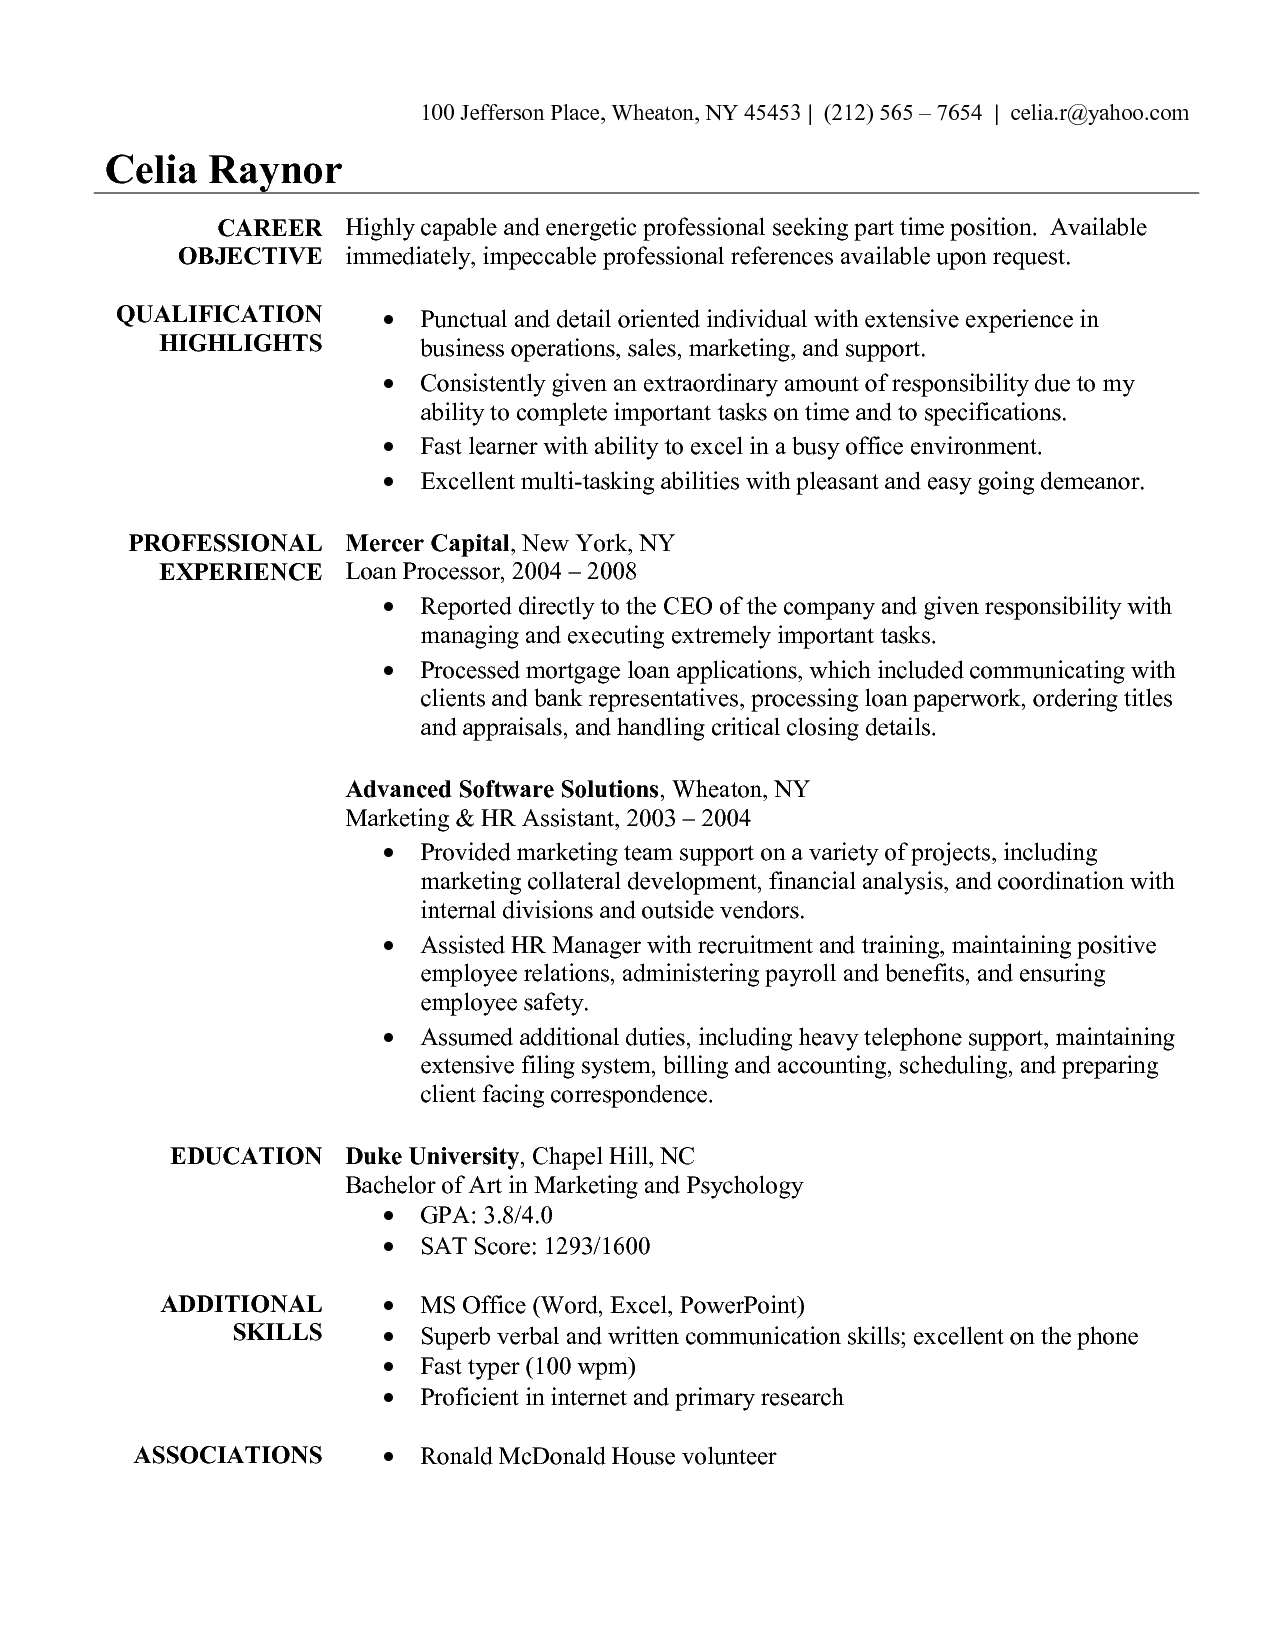 free medical administrative assistant resume sample resume for certified medical administrative assistant celia raynor. Resume Example. Resume CV Cover Letter